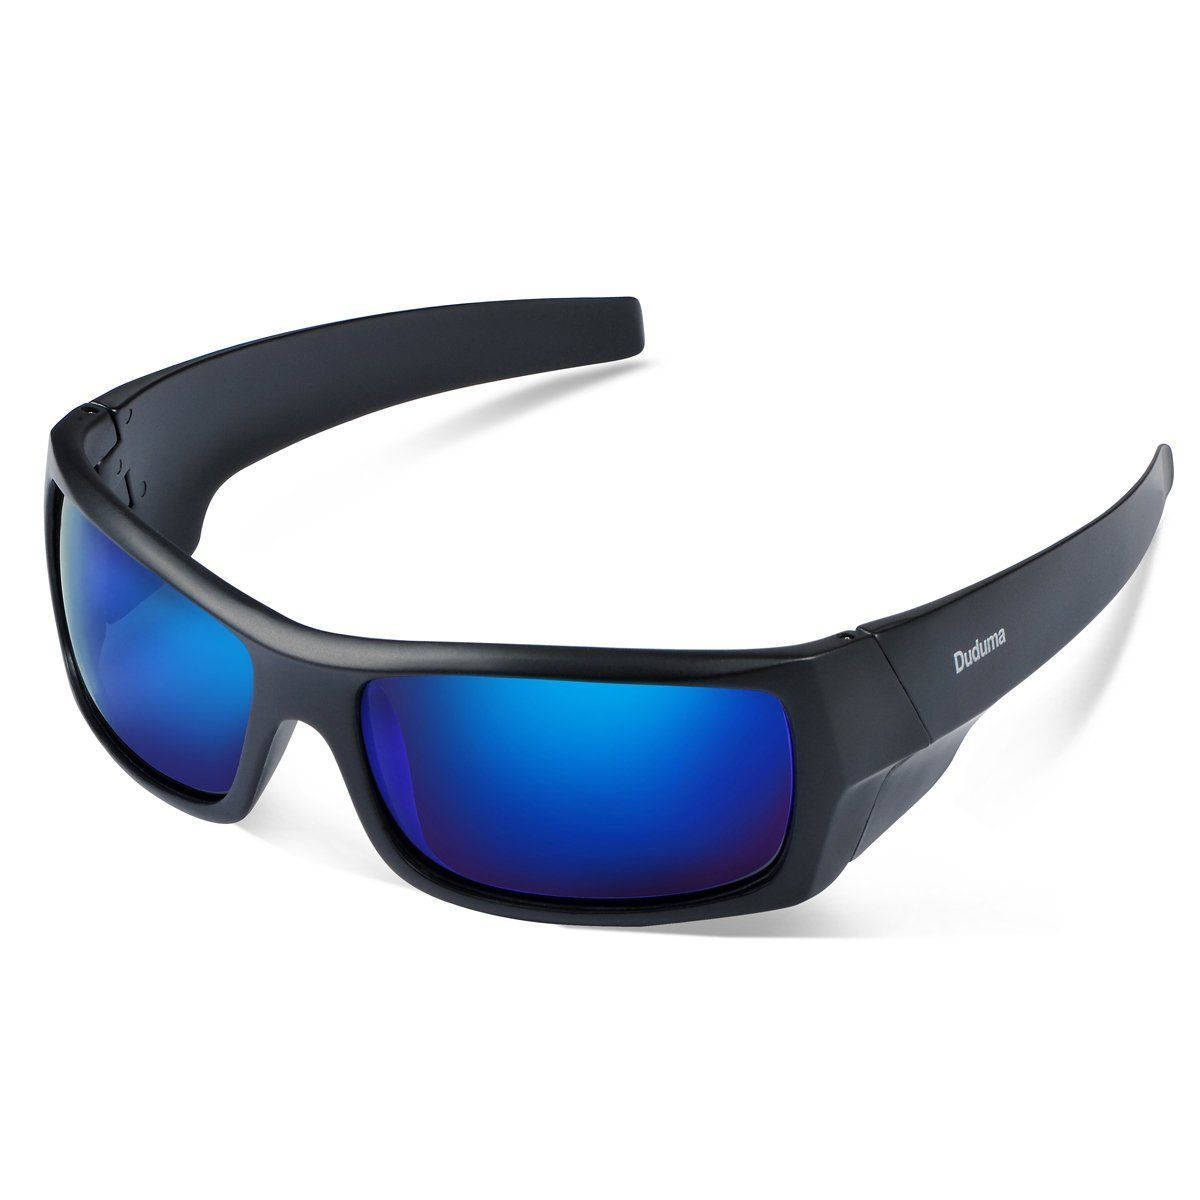 e9af2be93aa651  13.81 - Men Polarized Limited Edition Super Dark Shades Motorcycle  Sunglasses Uv Protect  ebay